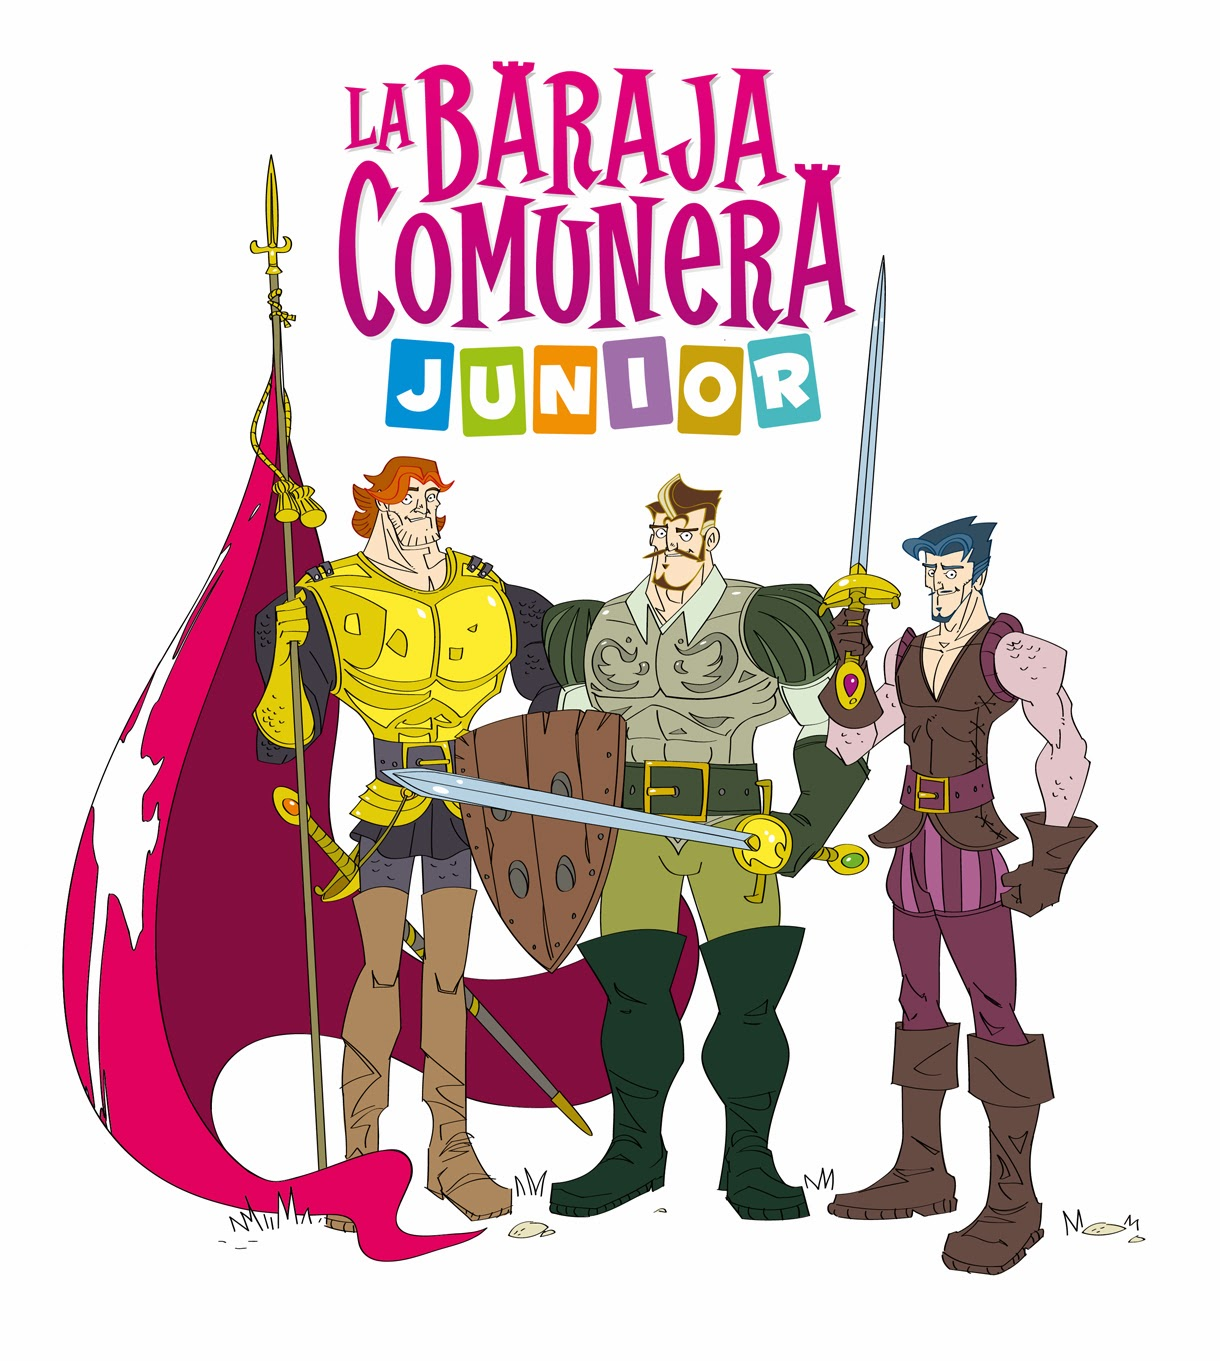 La Baraja Comunera Junior